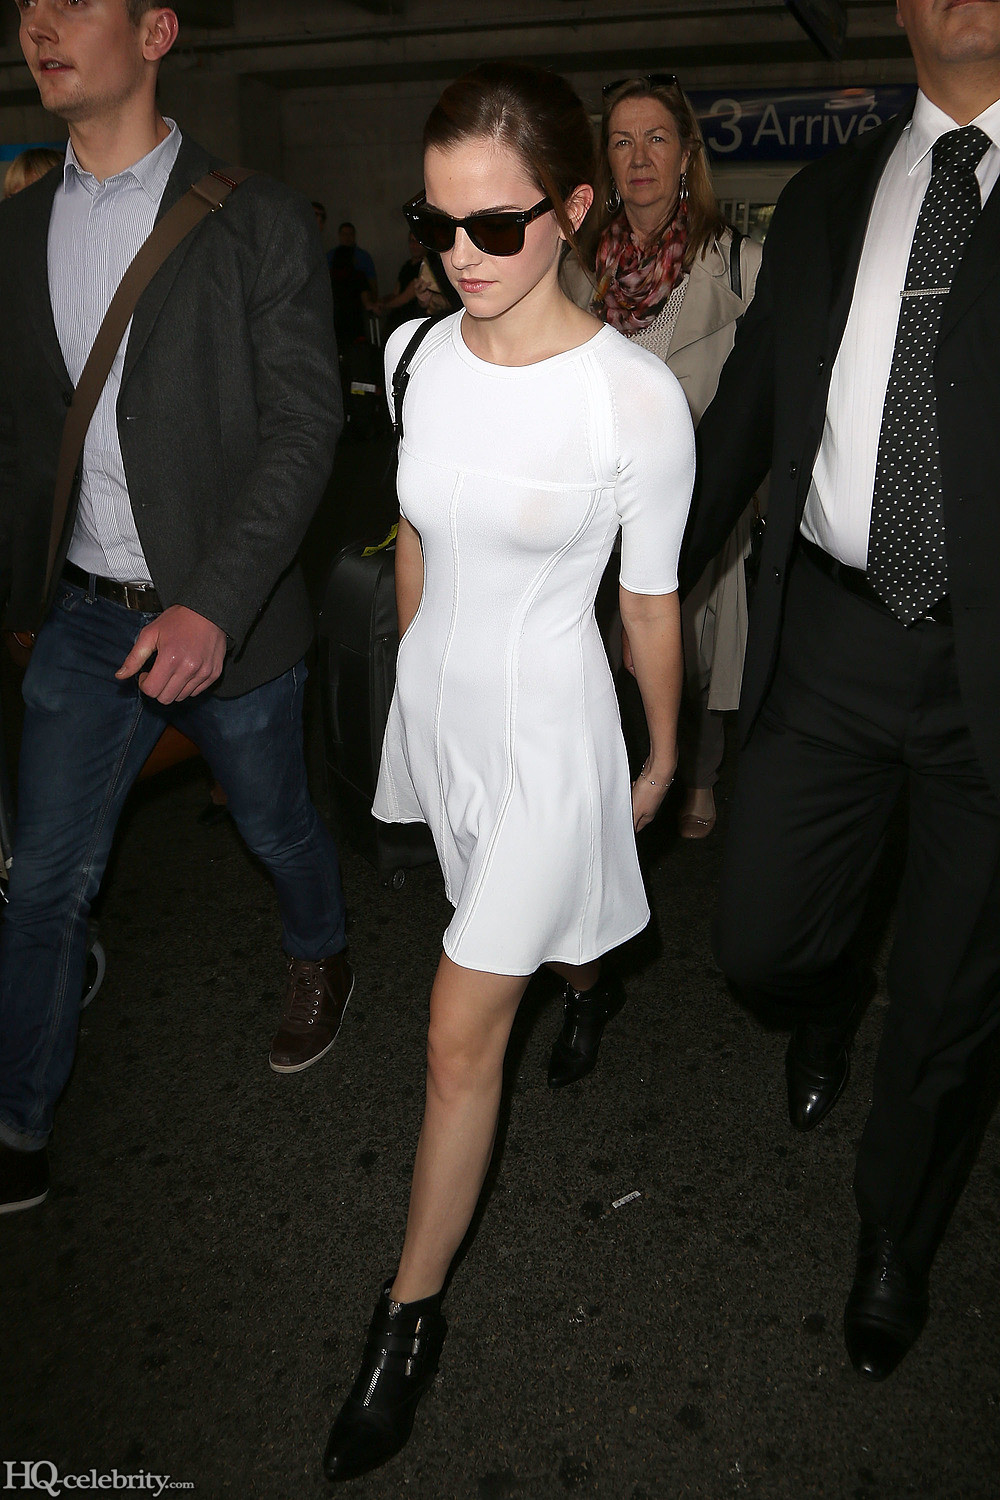 Emma Watson Shows Off Her Body But Stays Classy AbgNbq3h